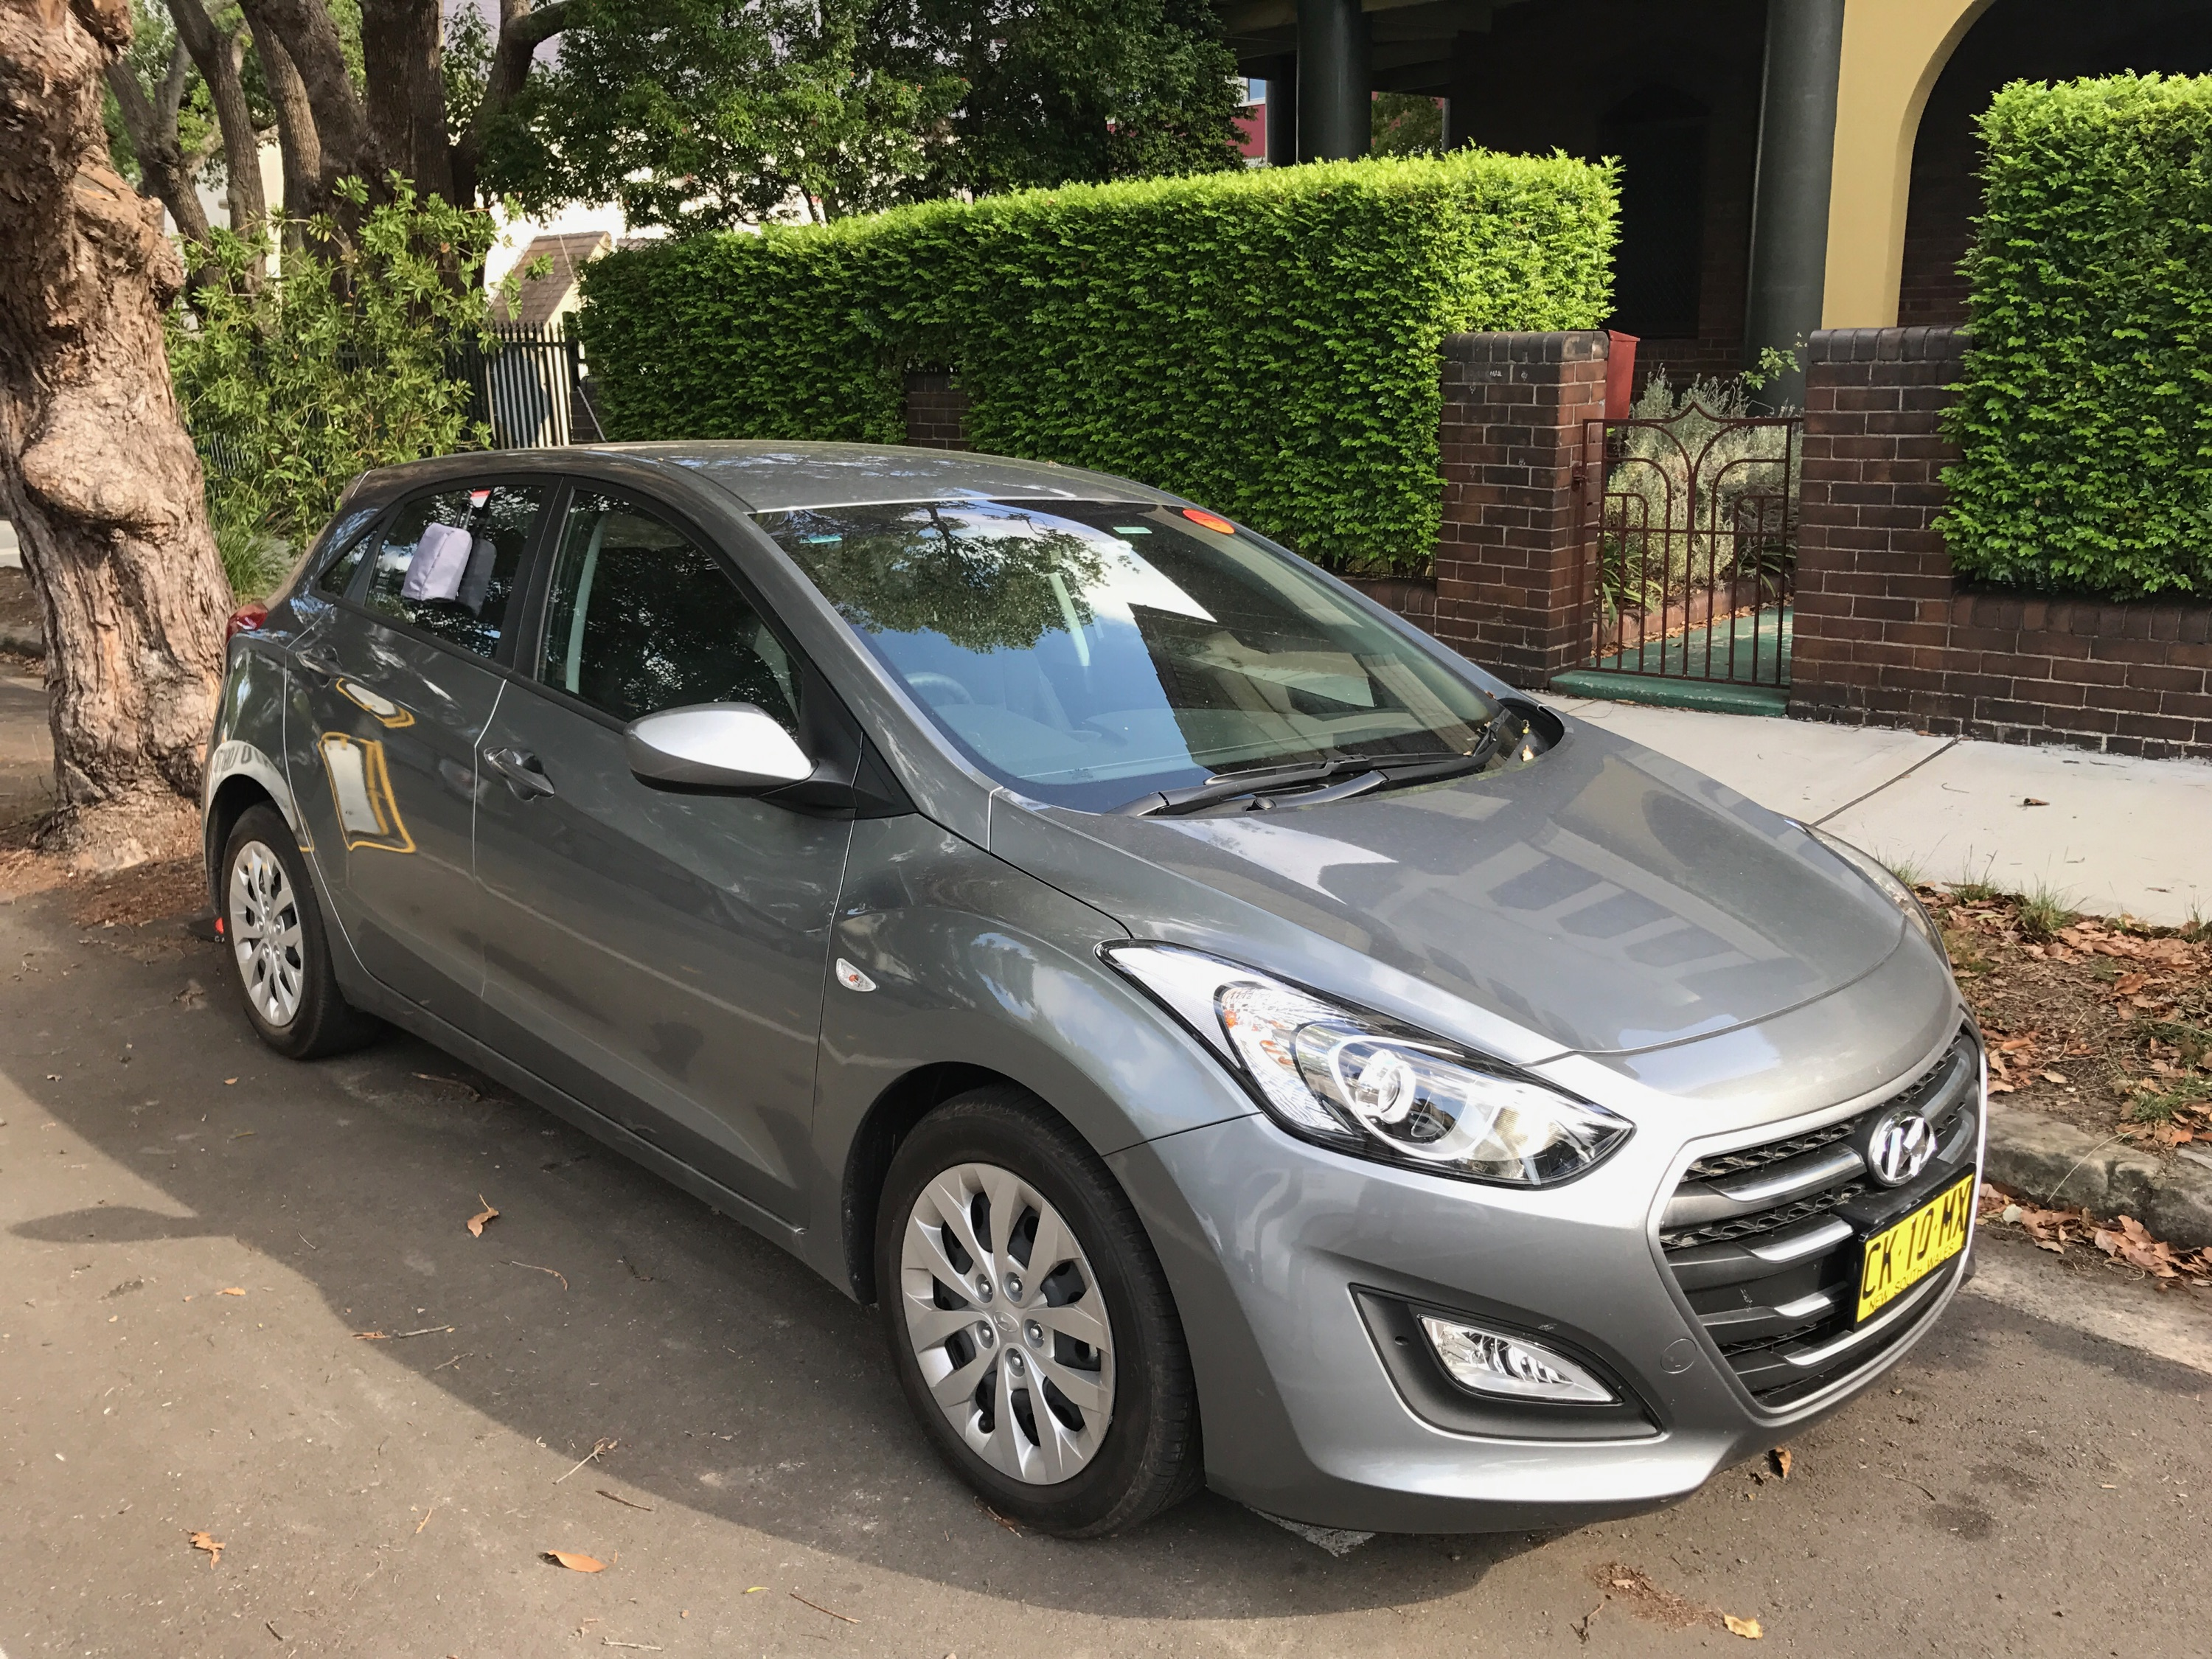 Picture of Luke's 2016 Hyundai i30